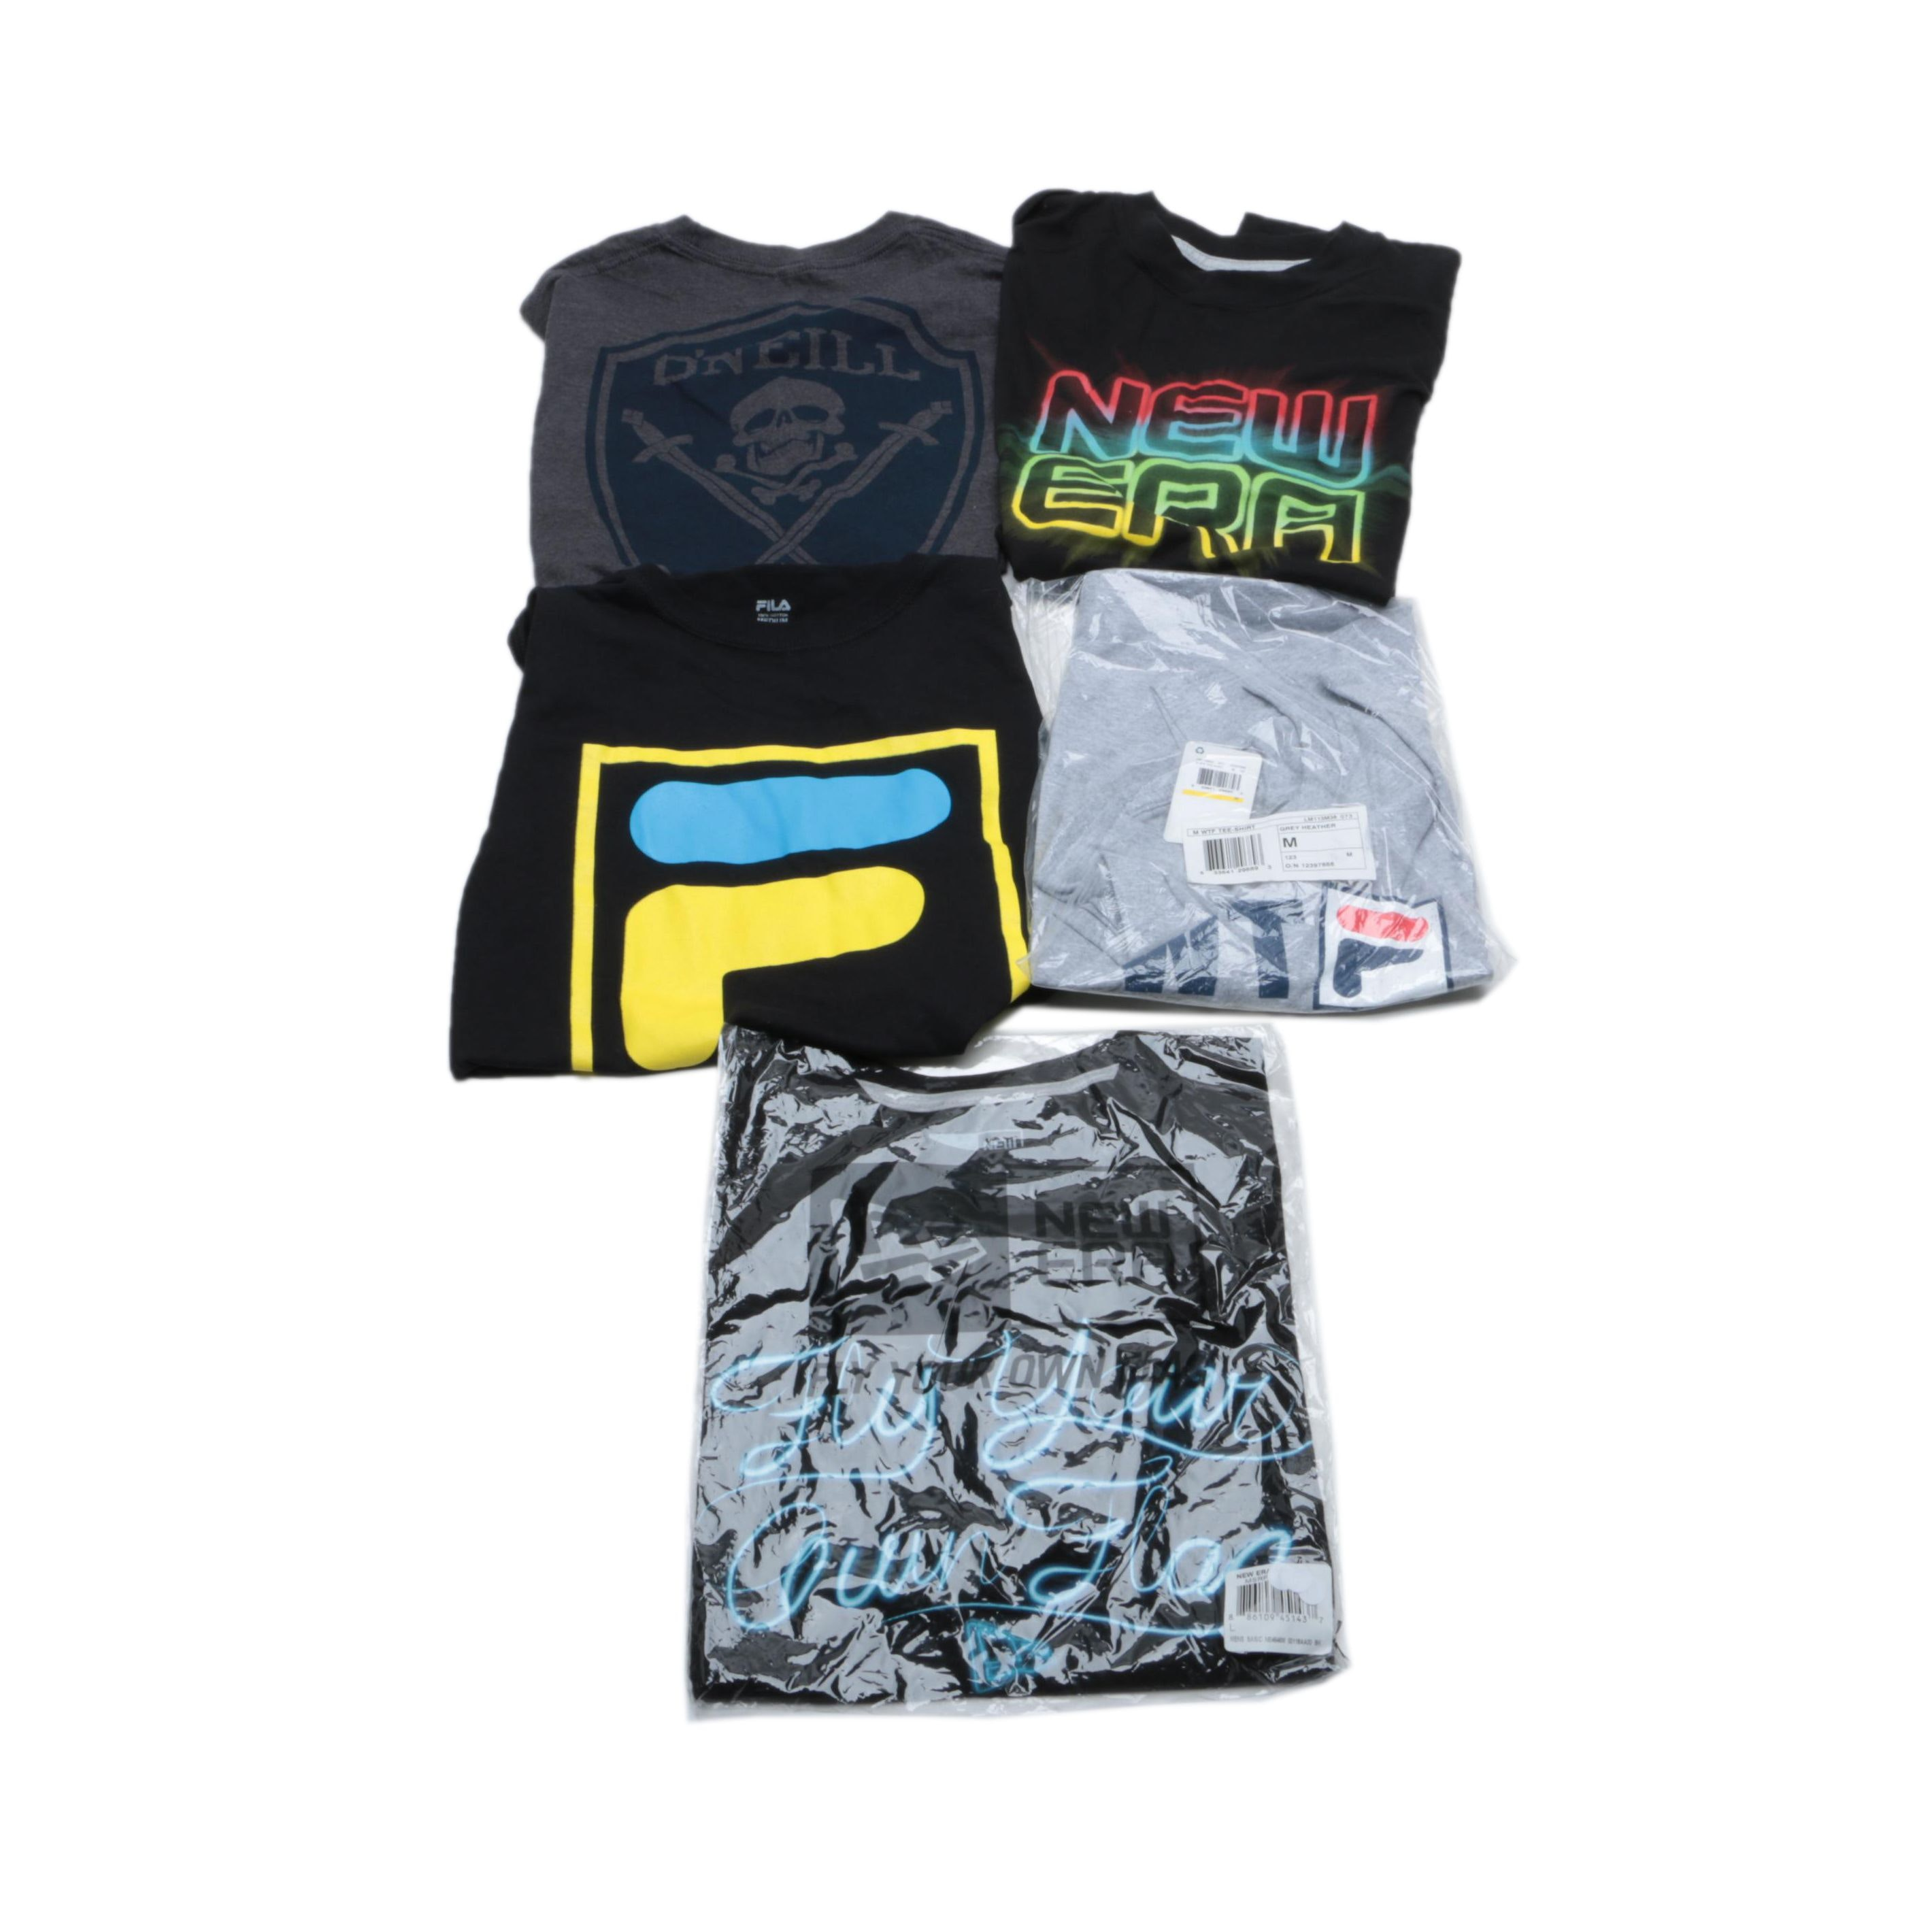 Men's New Era, Fila and O'Neill Brand T-Shirts